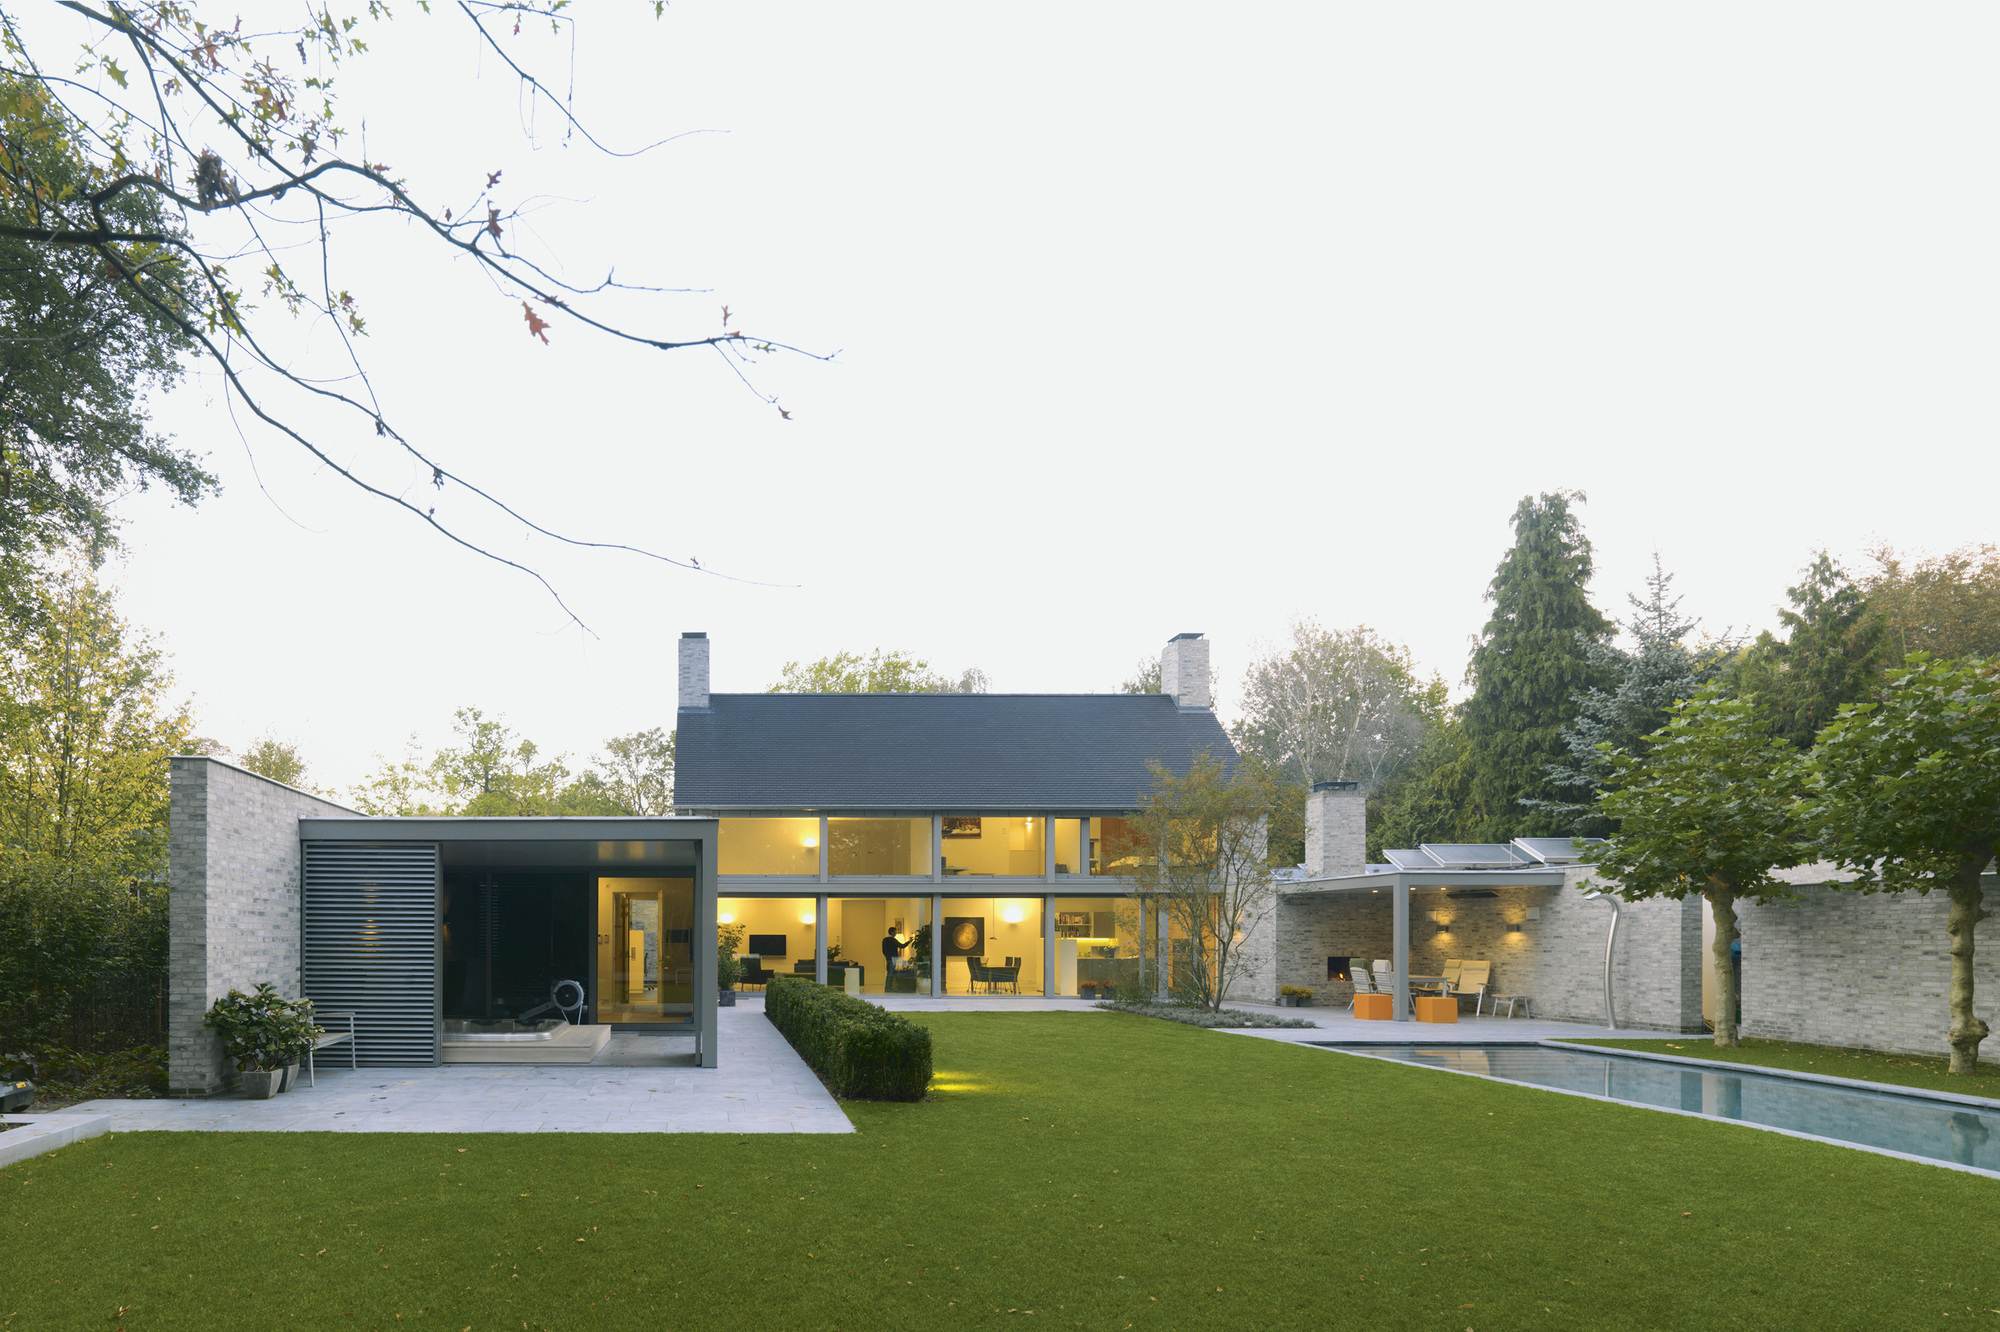 Villa rotonda in goirle the netherlands - Huis architect ...